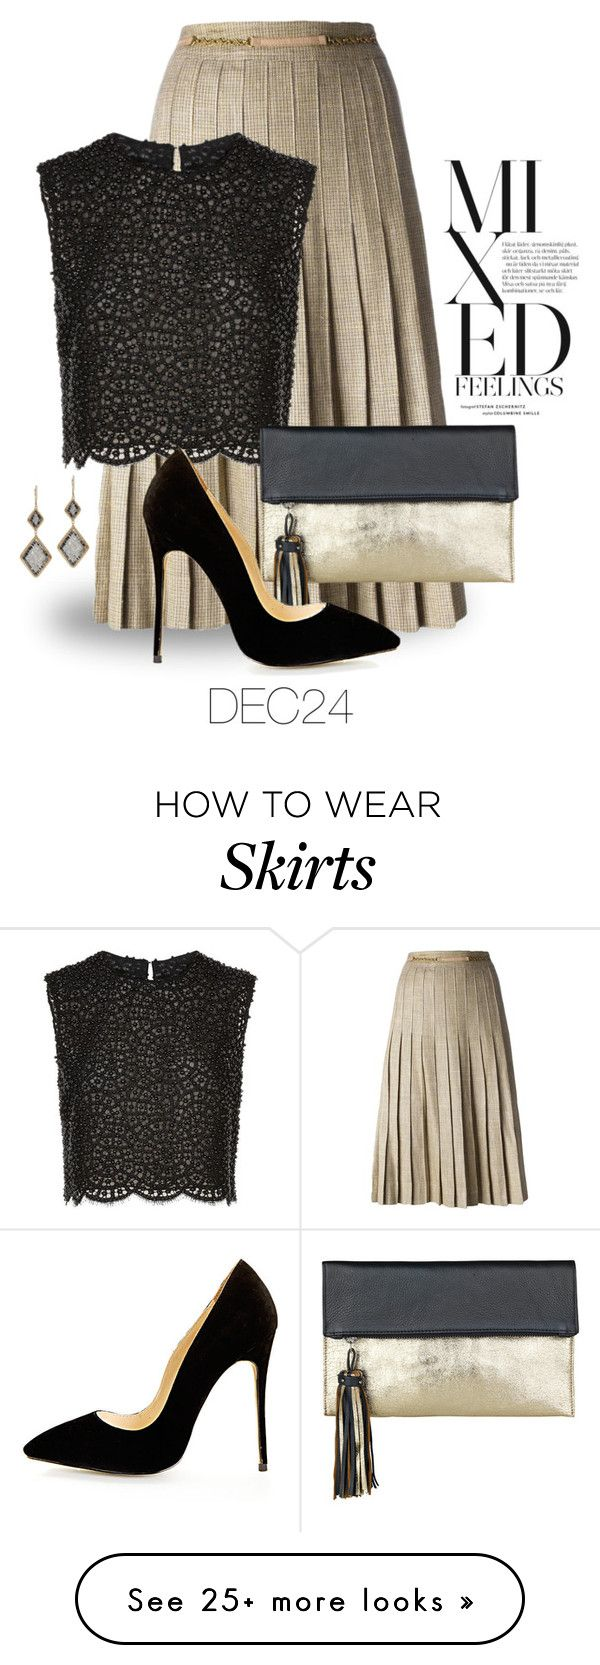 """Dec 24th (tfp) 2759"" by boxthoughts on Polyvore featuring Dana Kellin, CÉLINE, Costarellos, BeckSöndergaard and tfp"